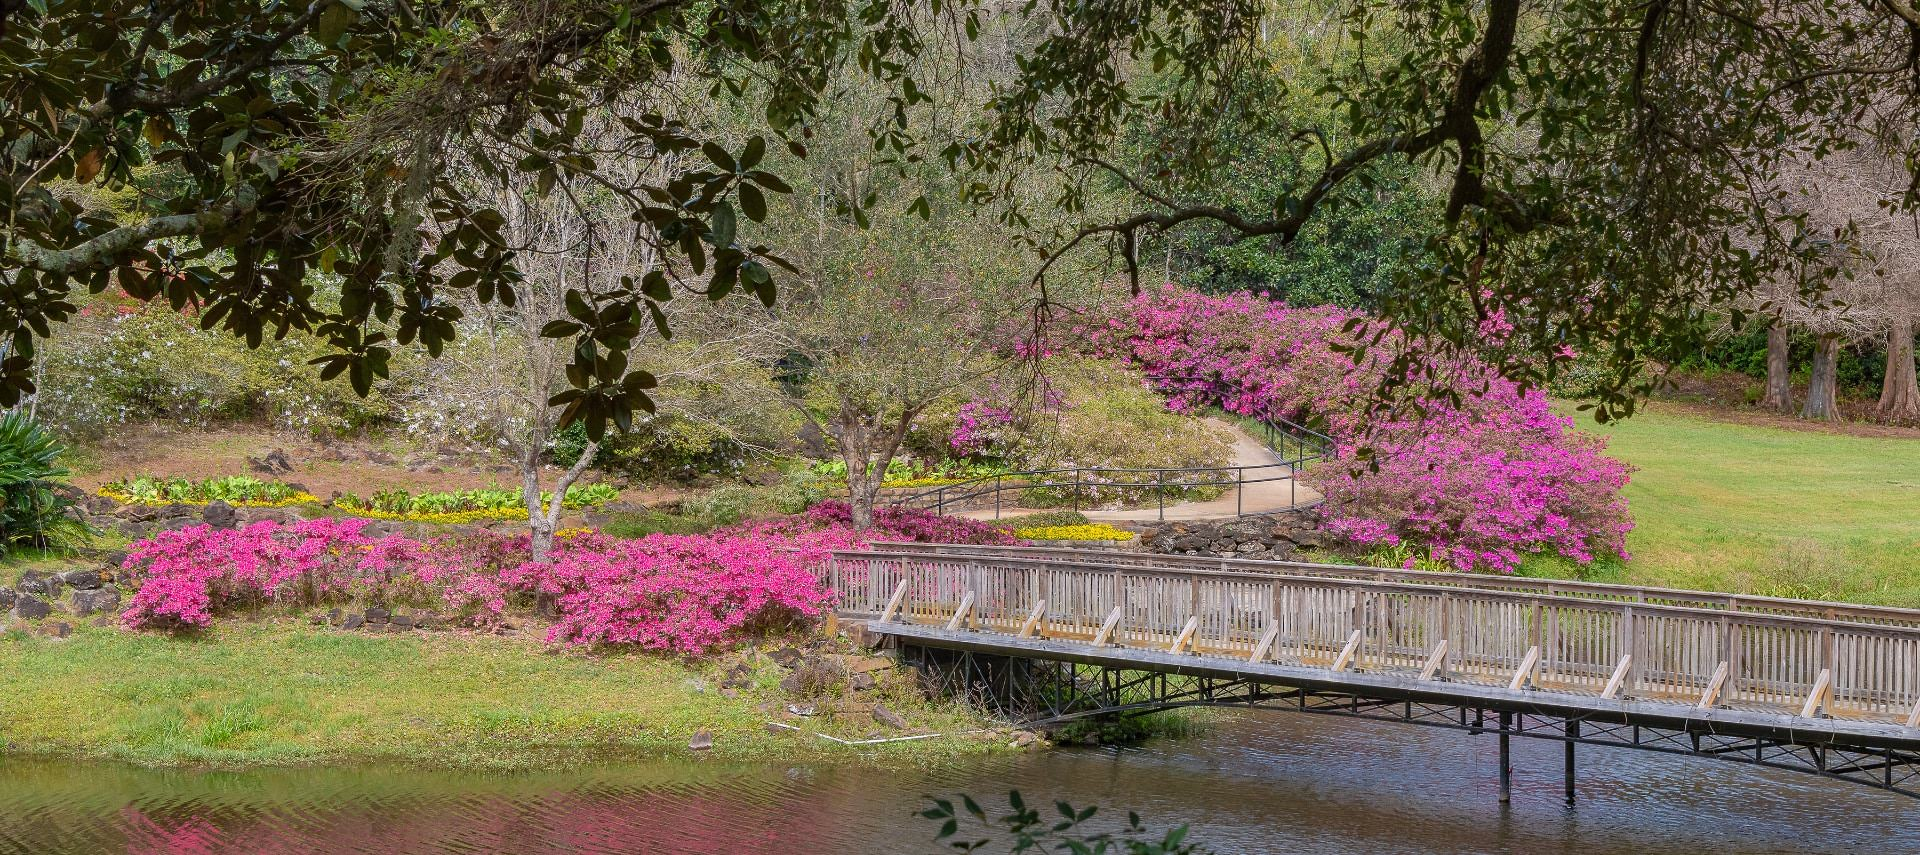 Small river with bridge surrounded by nicely cut grass, trees, and bushes with bright pink flowers